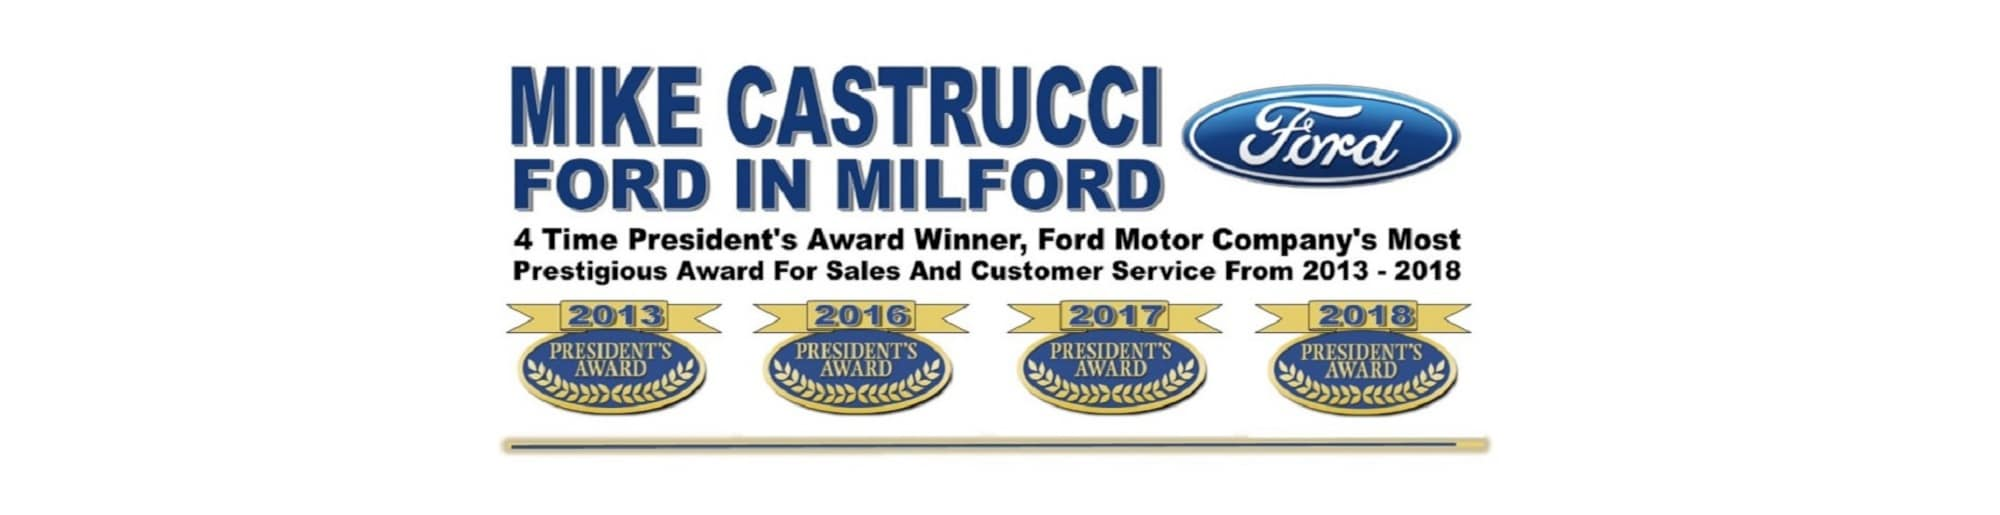 Mike Castrucci Ford >> Mike Castrucci Ford Milford Ford Dealership In Milford Oh